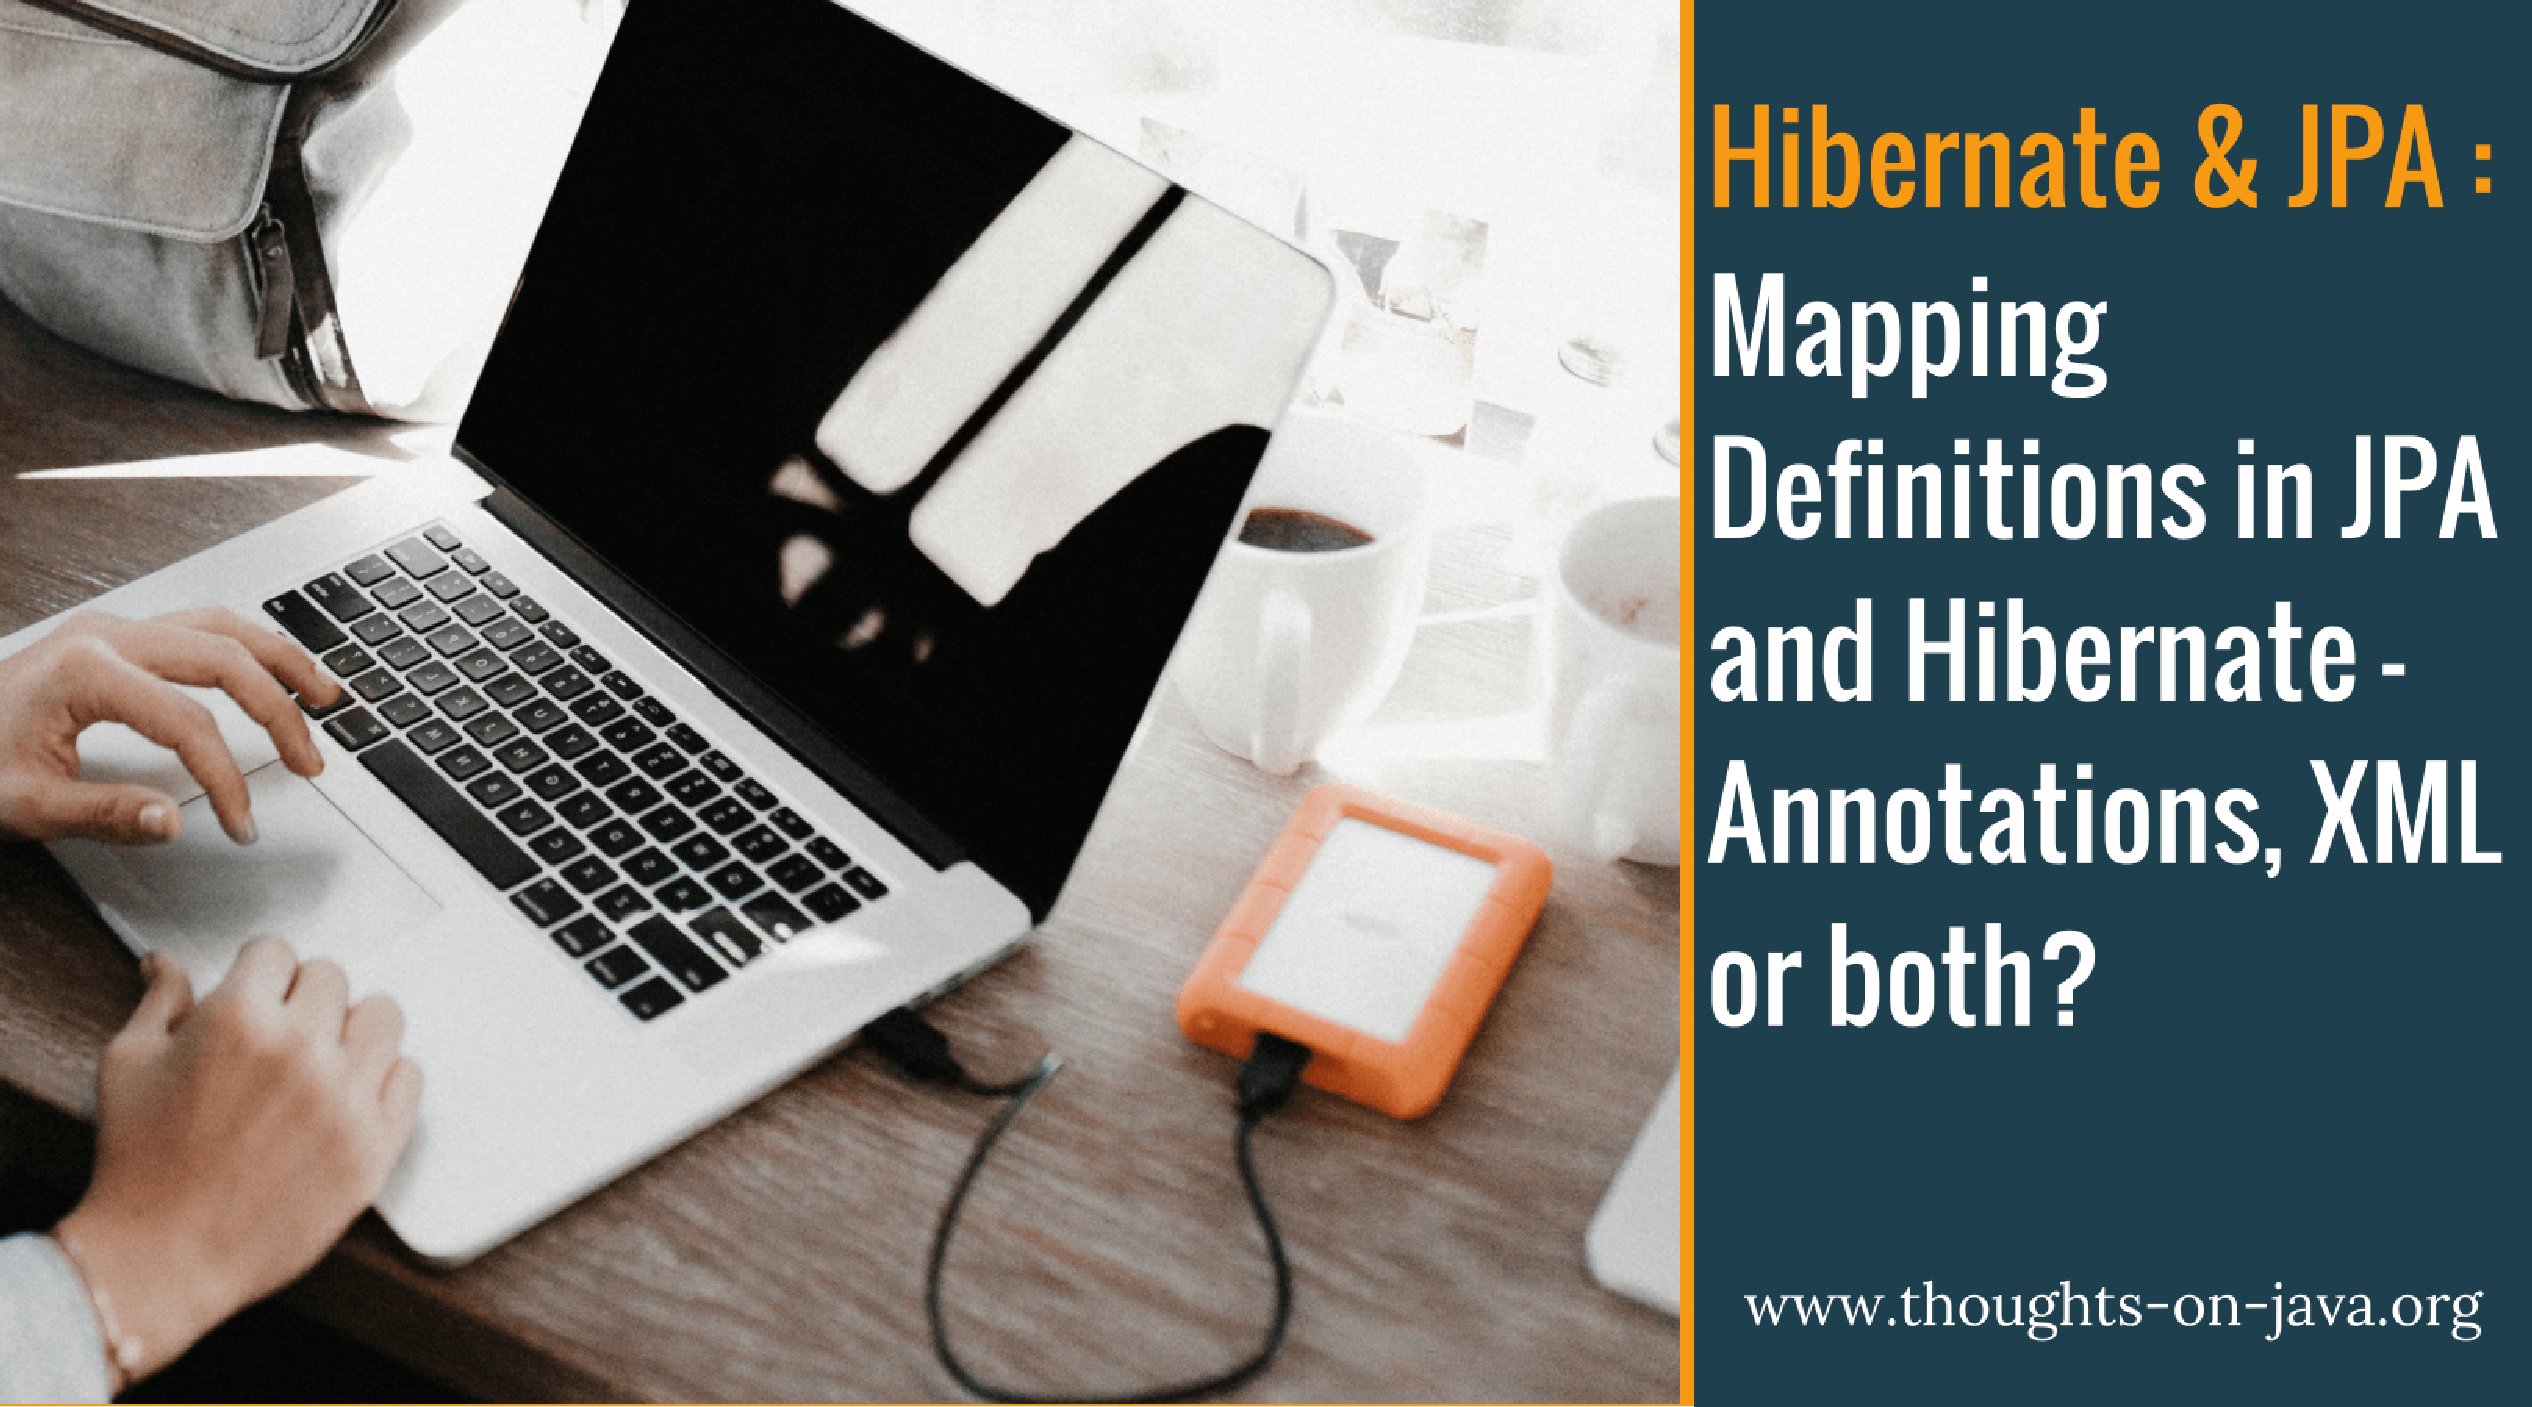 Mapping Definitions in JPA and Hibernate - Annotations, XML